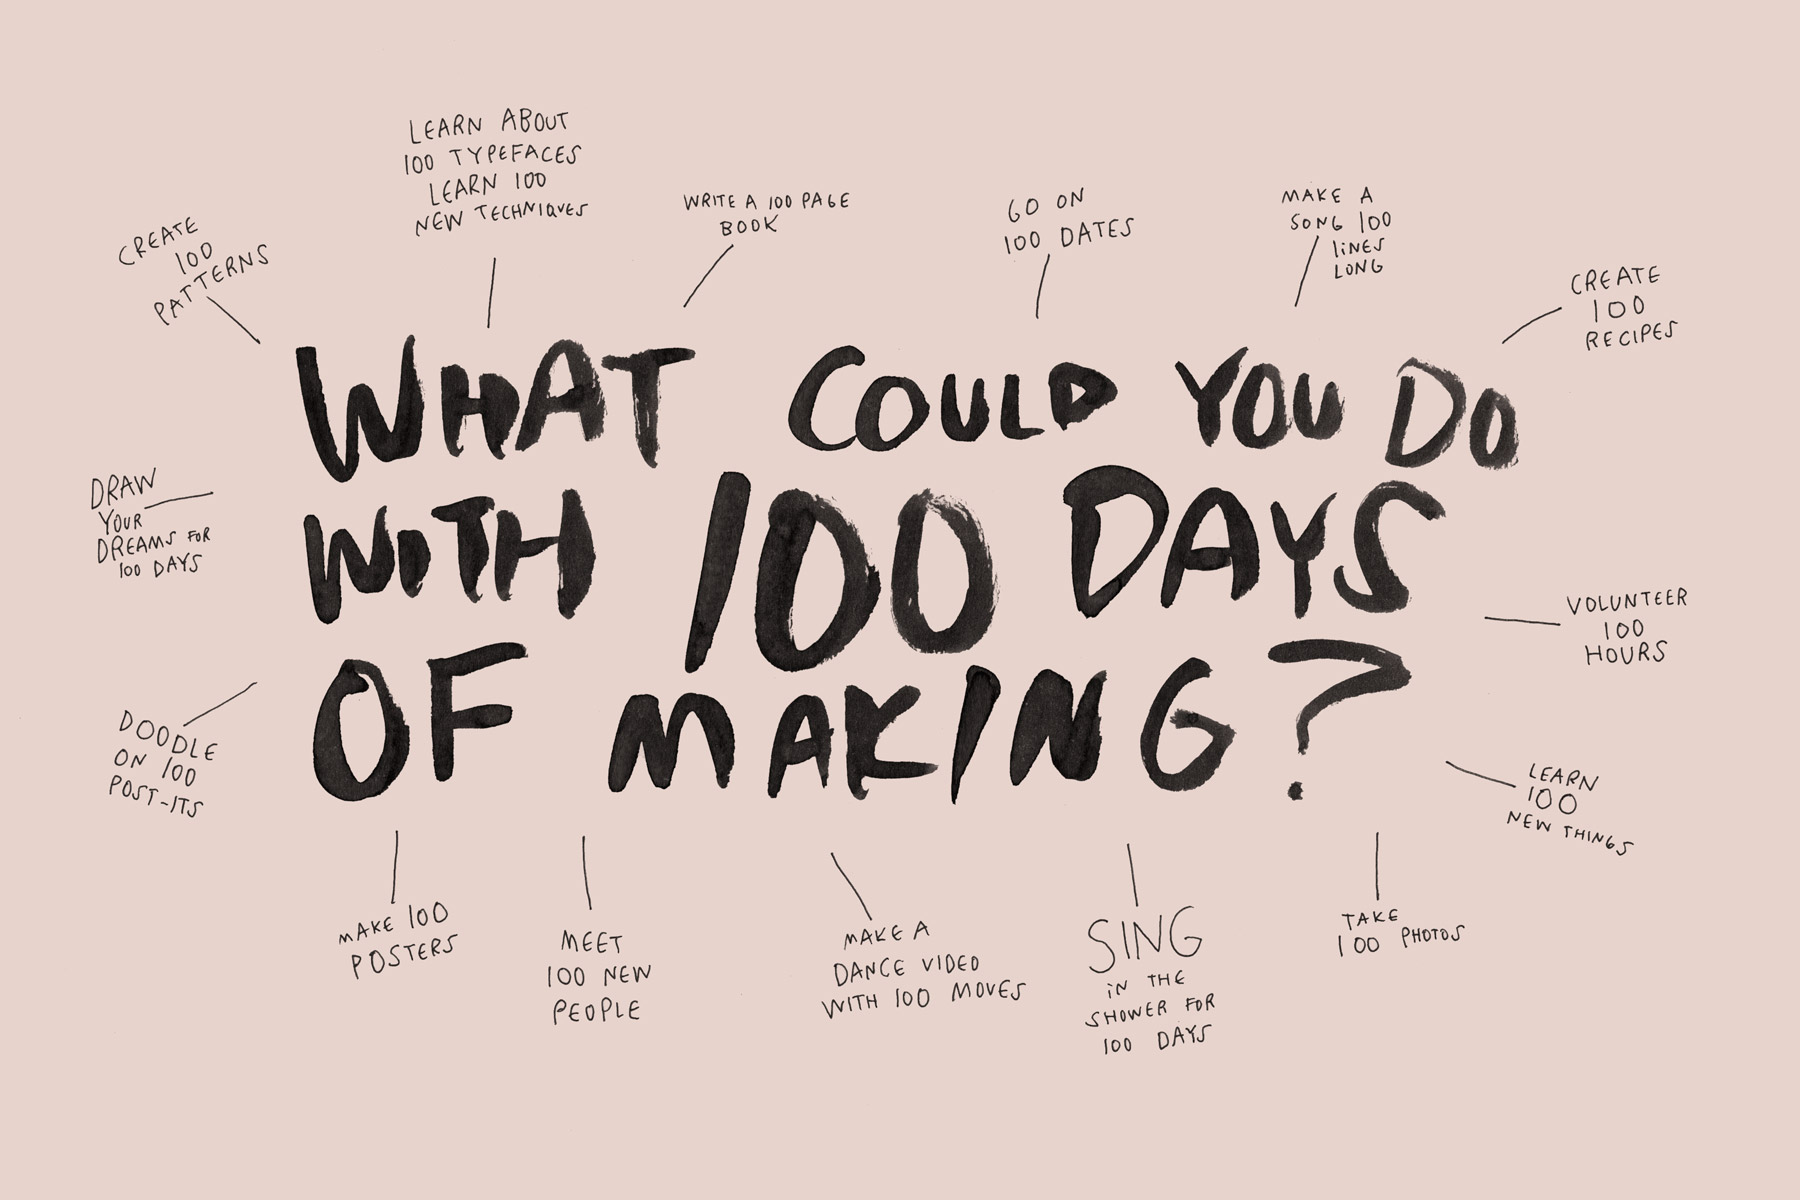 The 100-Day Project